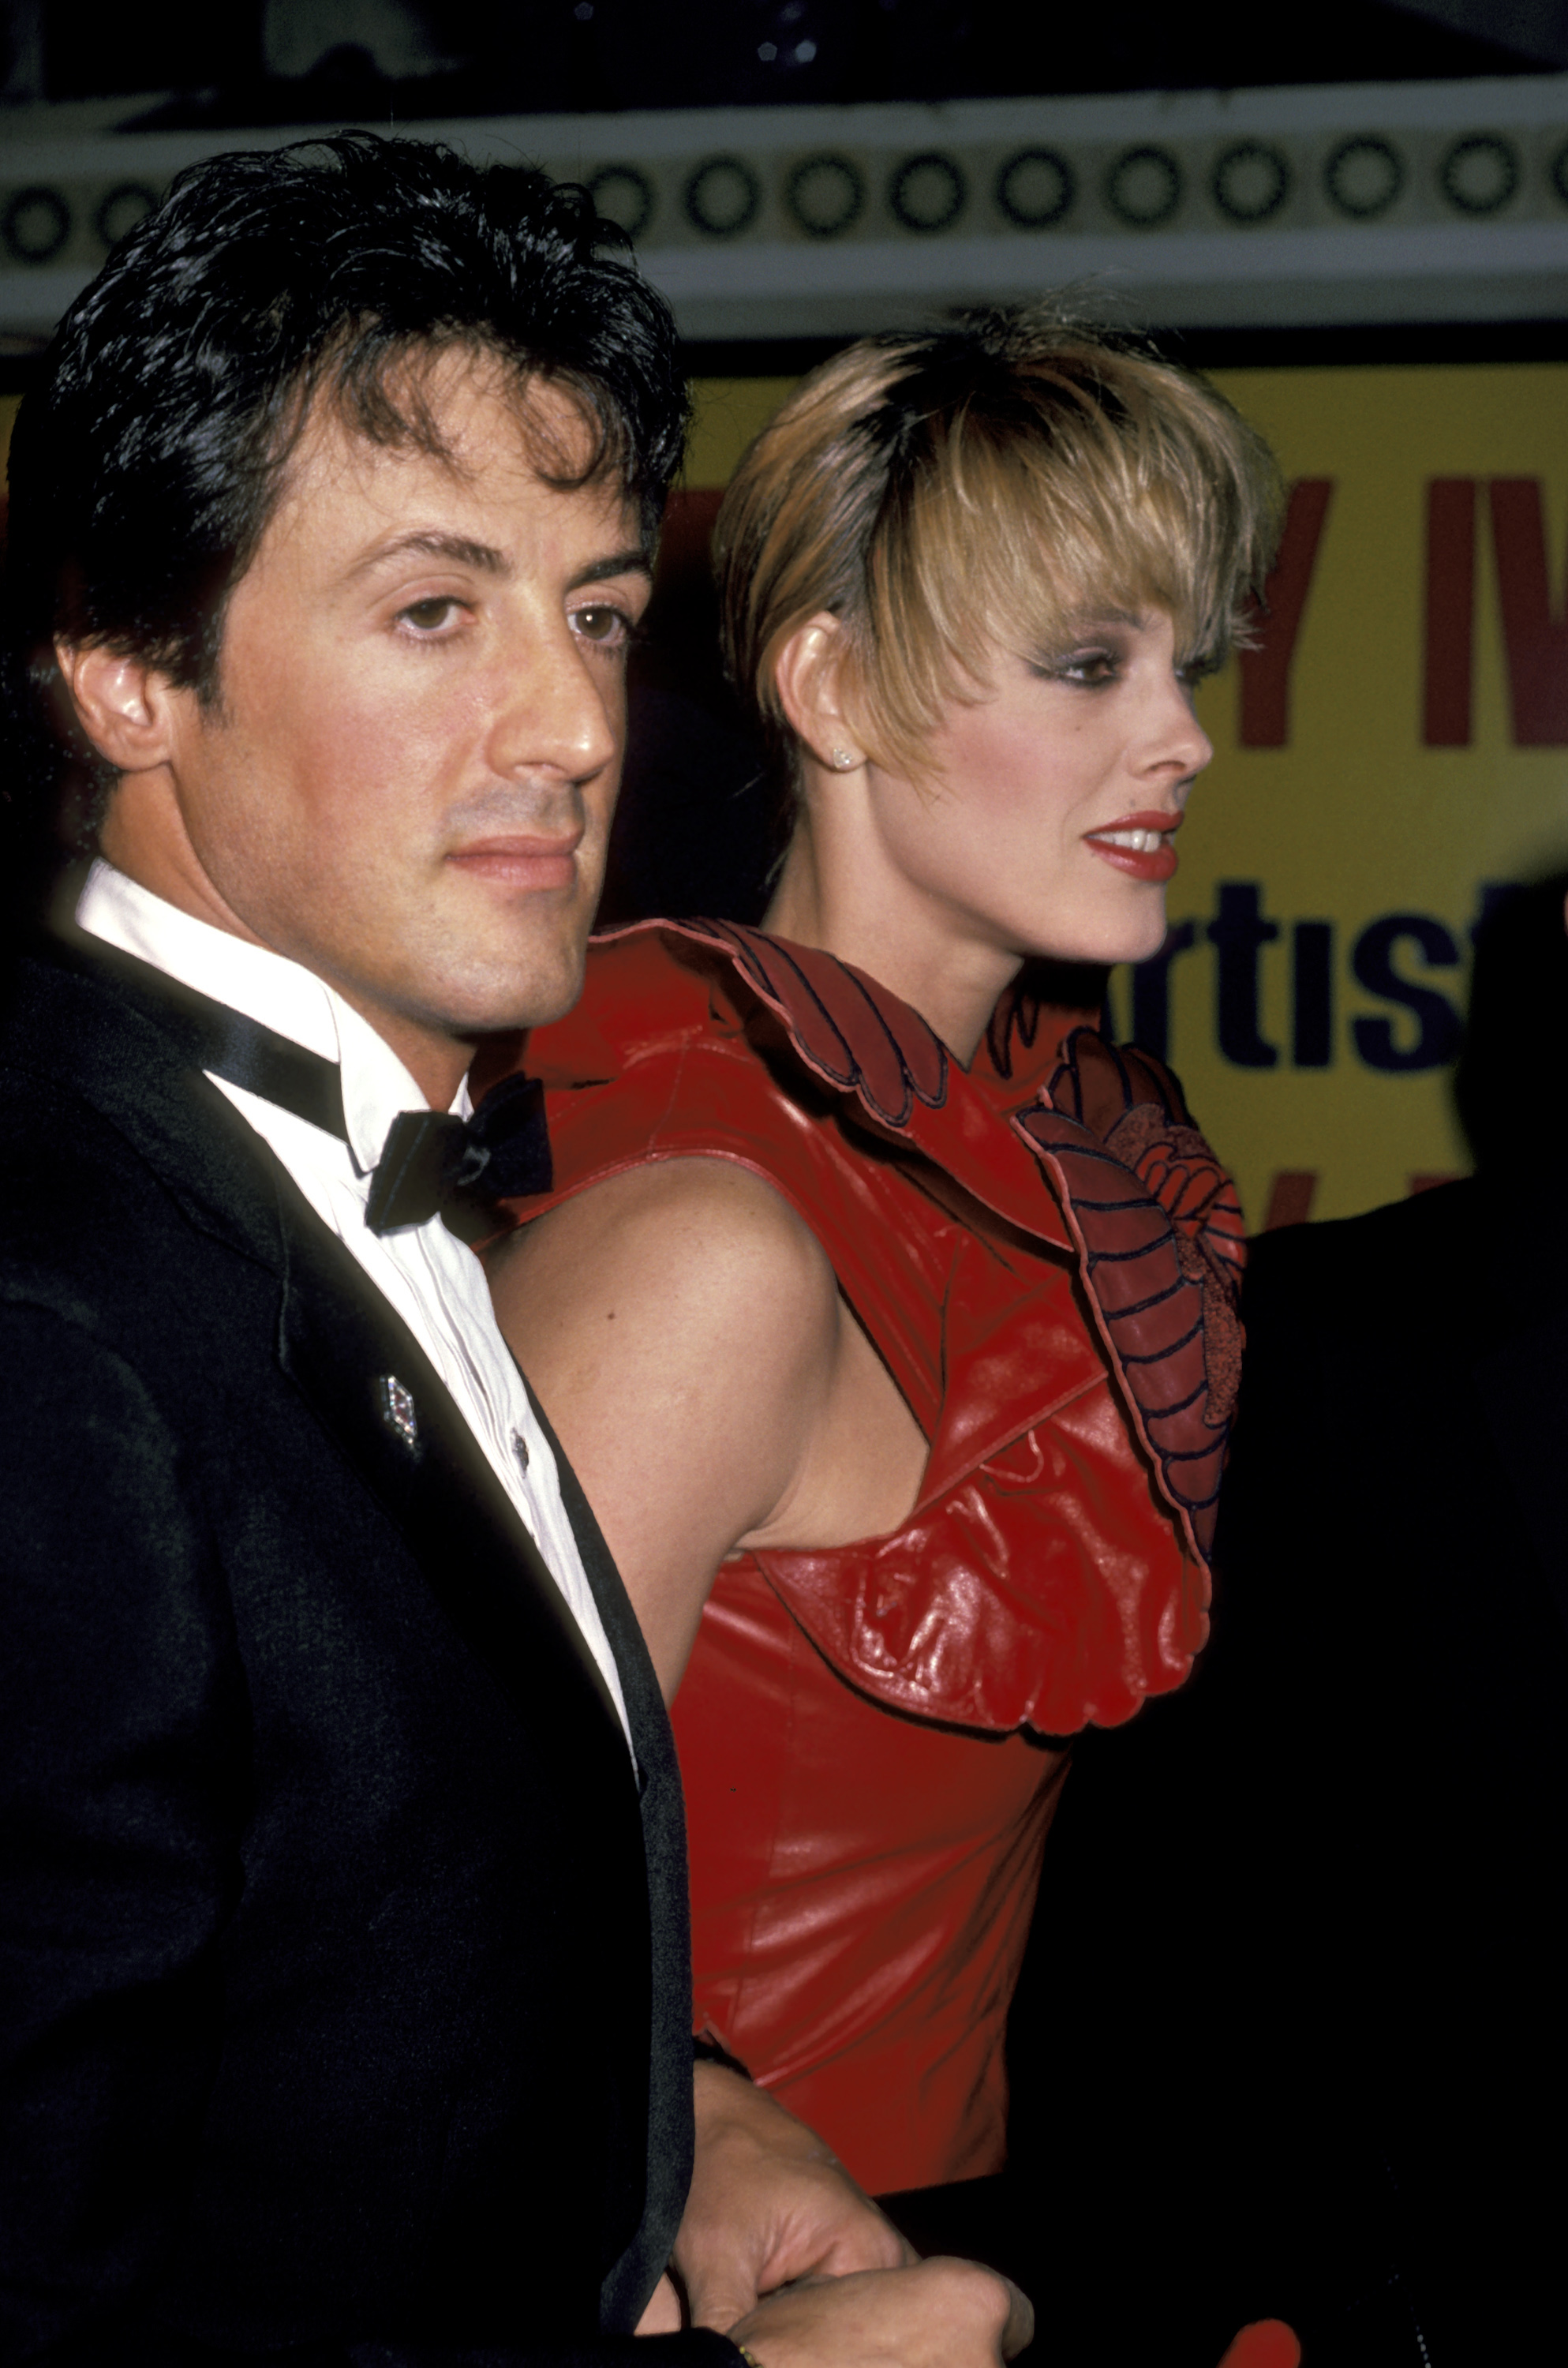 Sylvester Stallone and Brigitte Nielsen at an event for Rocky IV (1985)